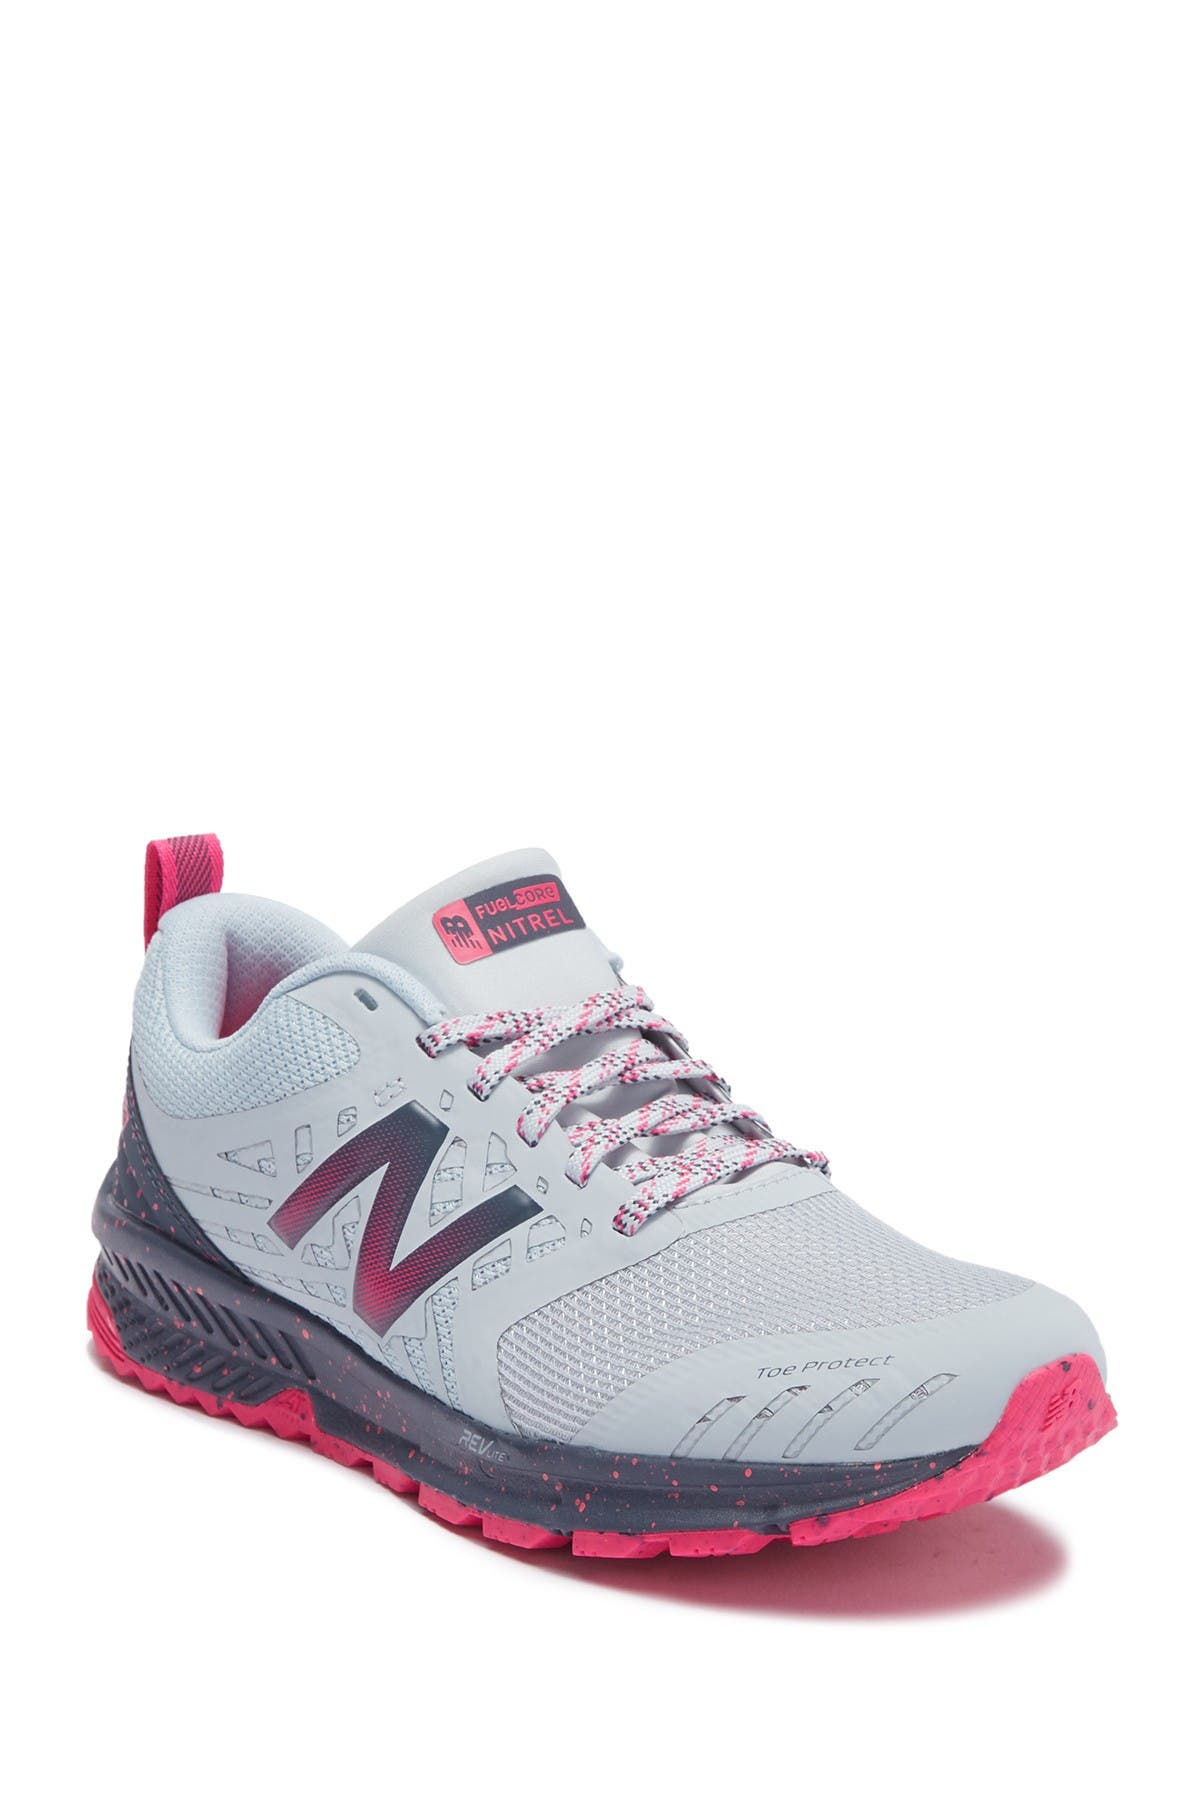 Image of New Balance Nitrel v1 FuelCore Trail Running Sneaker - Wide Width Available